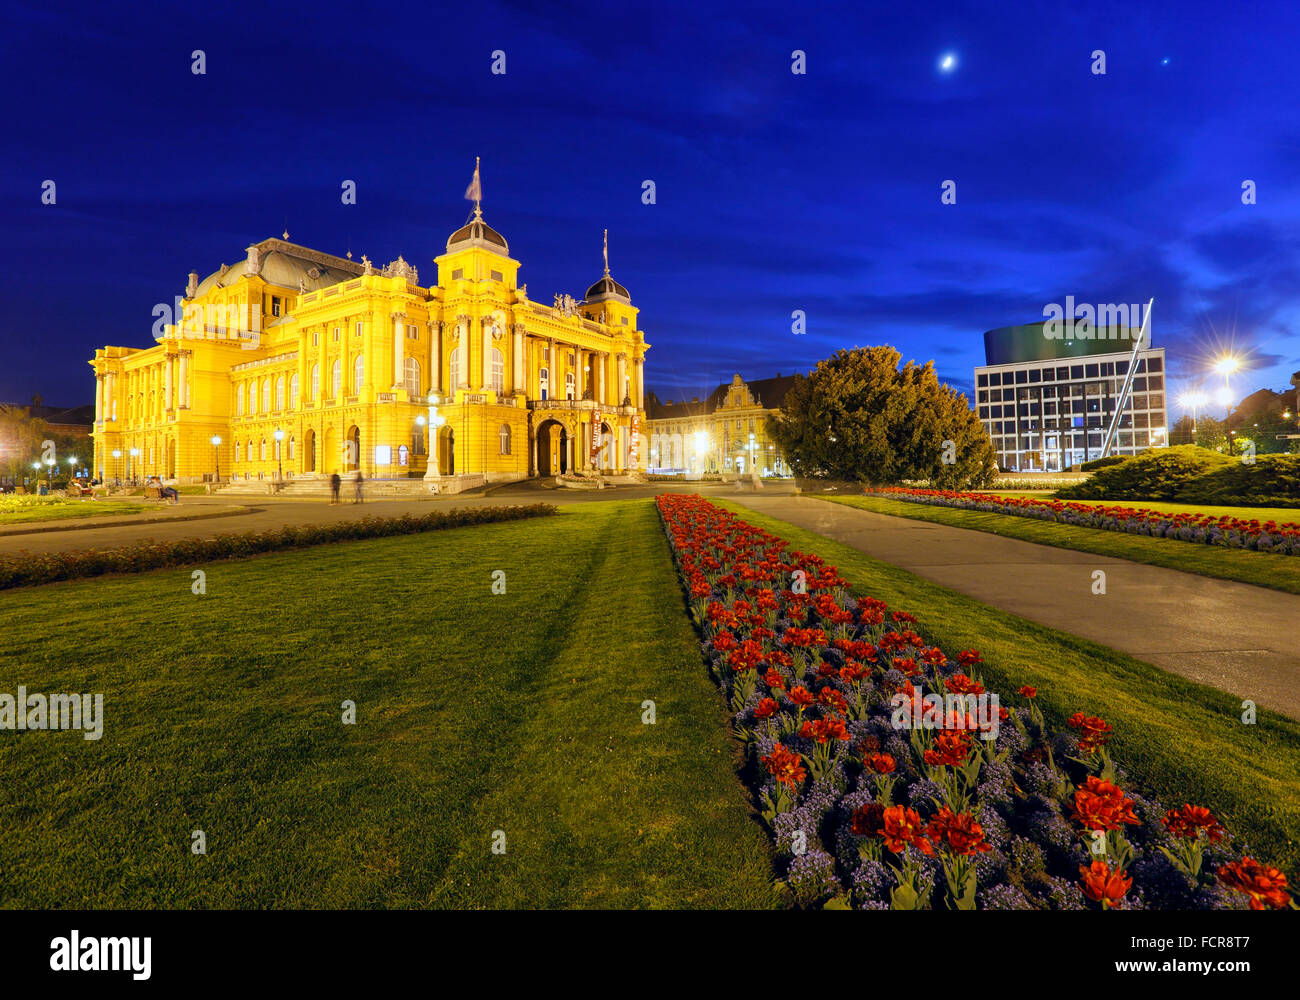 Zagreb national theater in the night - Stock Image